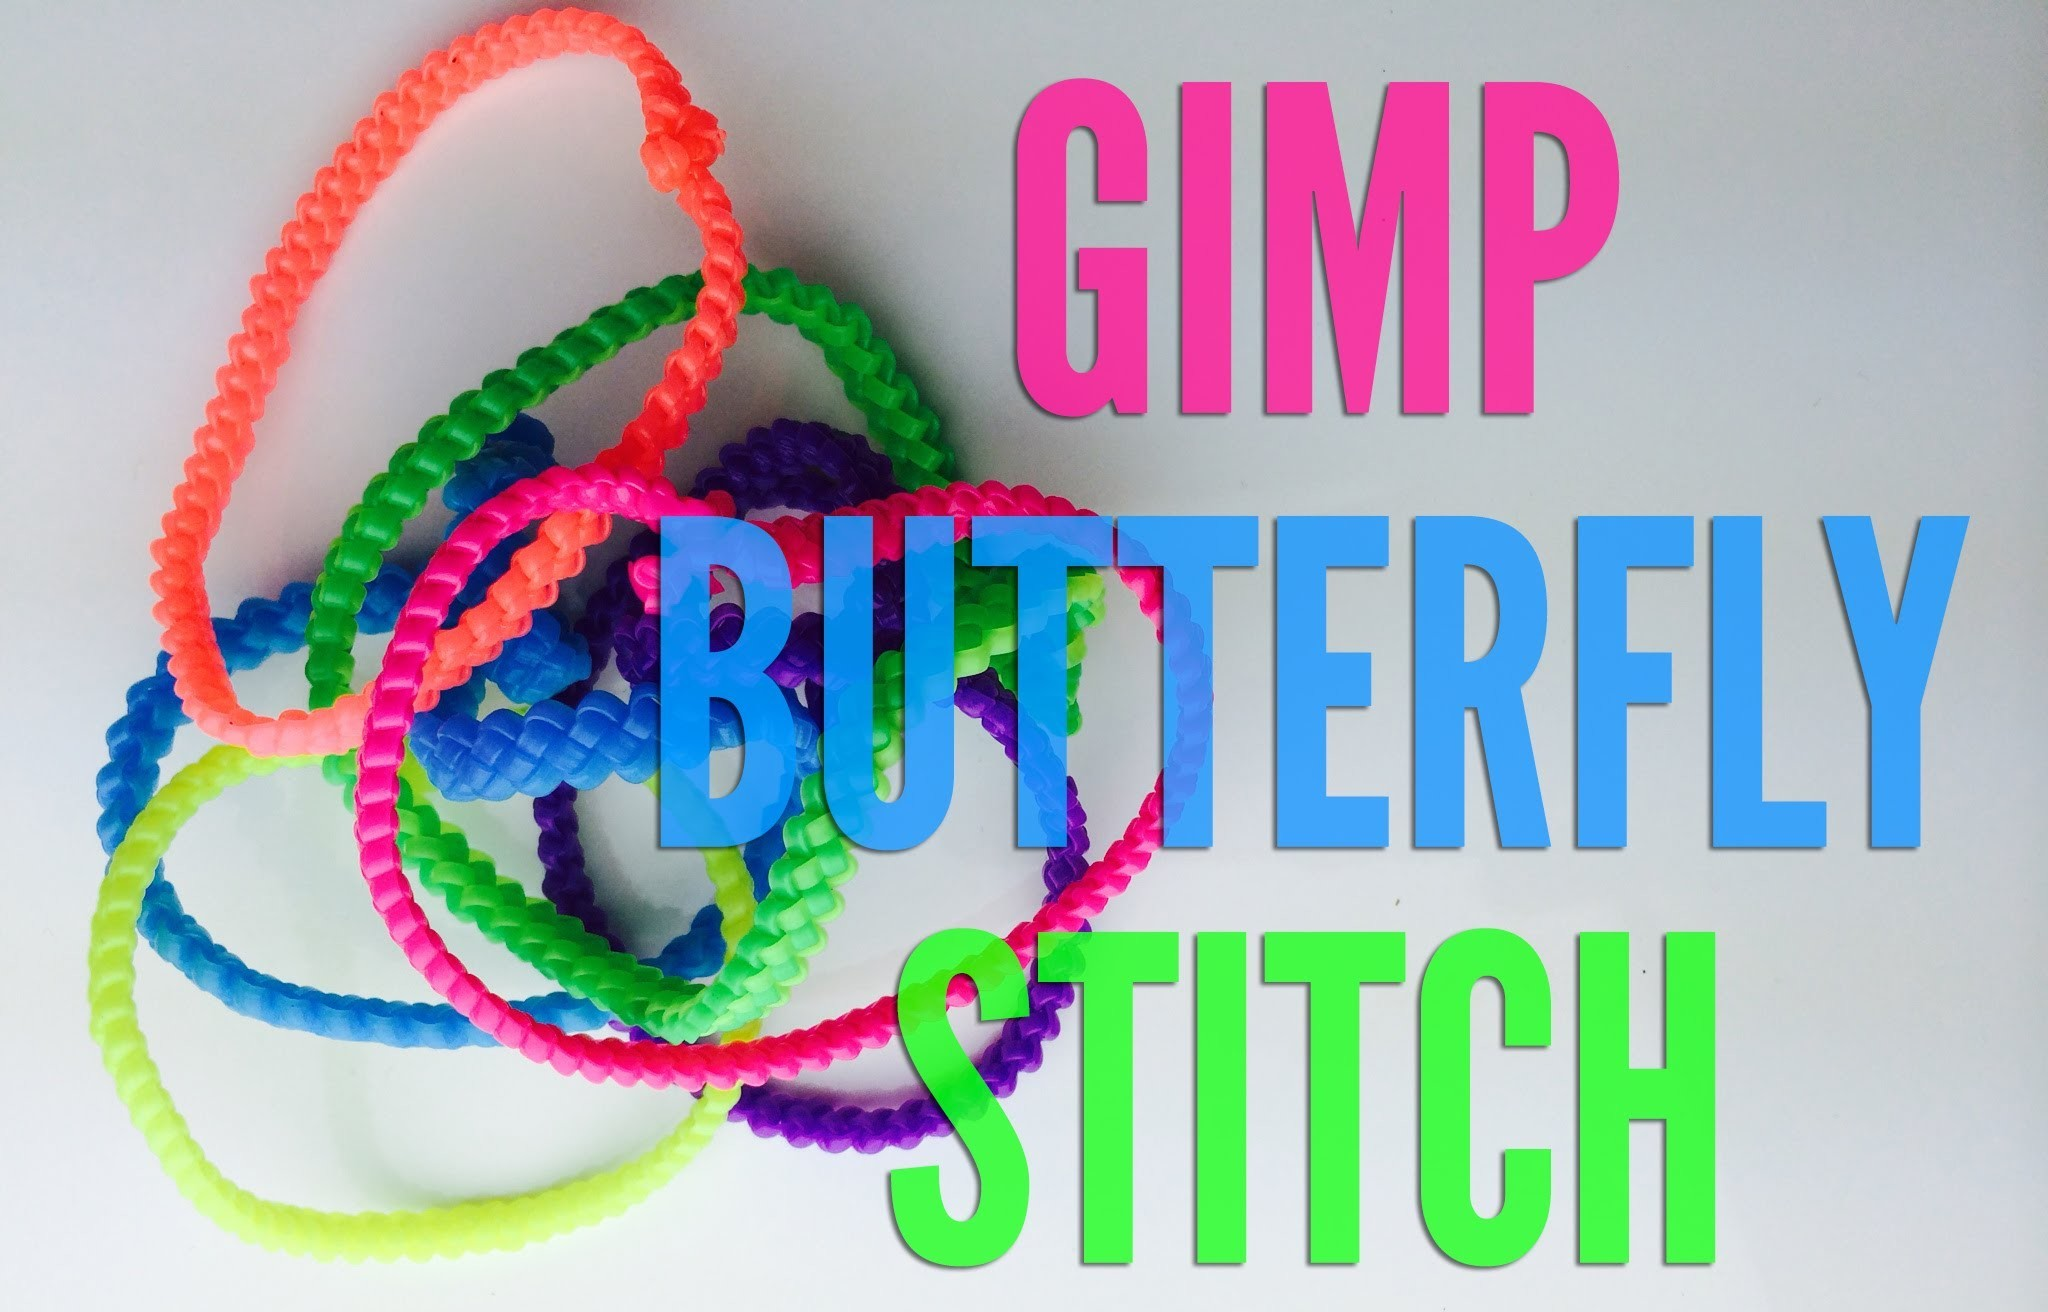 How to Make a Butterfly Gimp Bracelet - Step by Step Boondoggle Tutorial